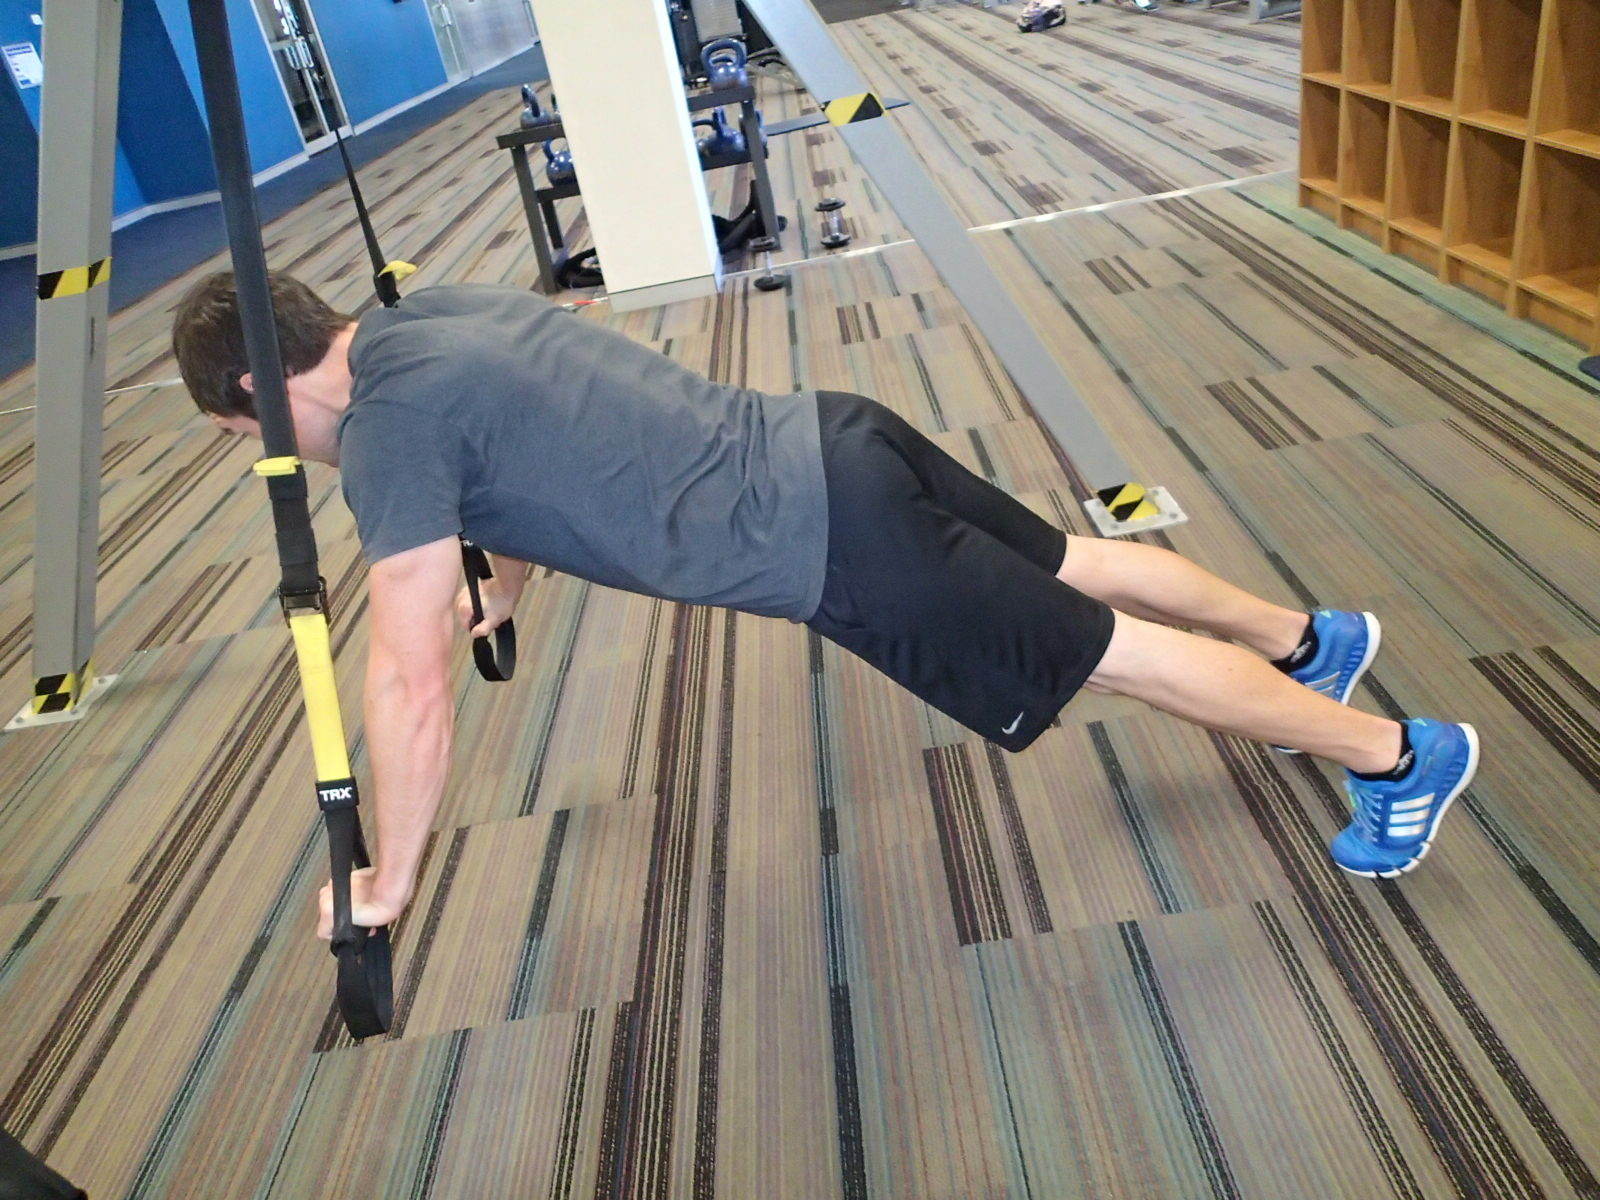 Push-Up - Suspension Trainer - feet grounded